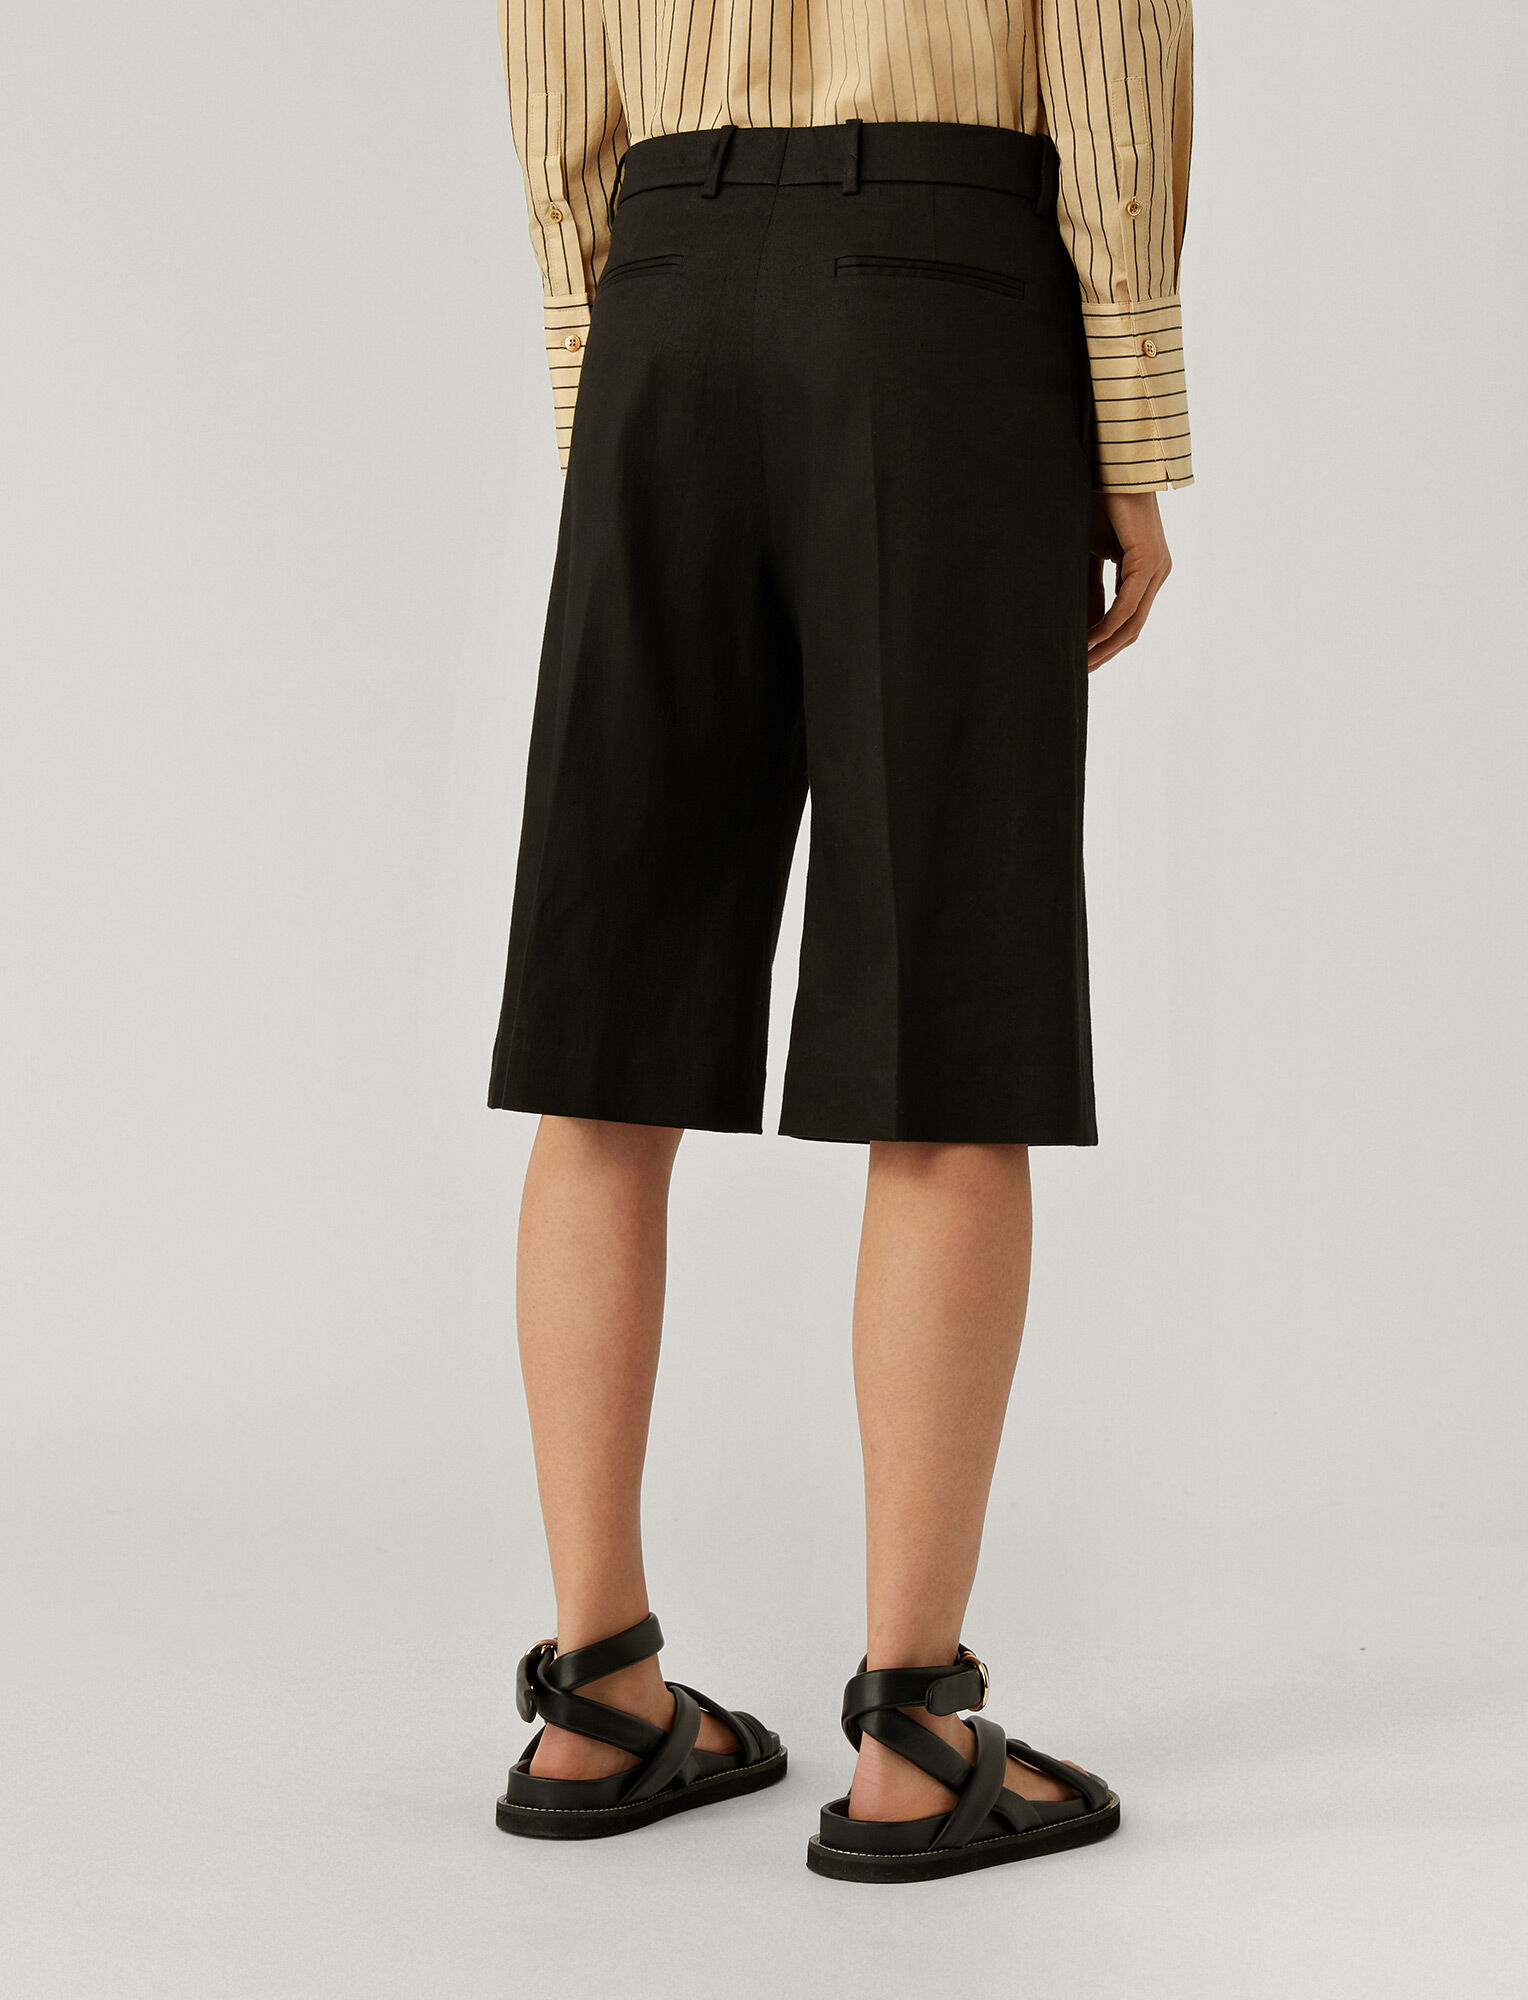 Joseph, Samuel Stretch Linen Trousers, in BLACK